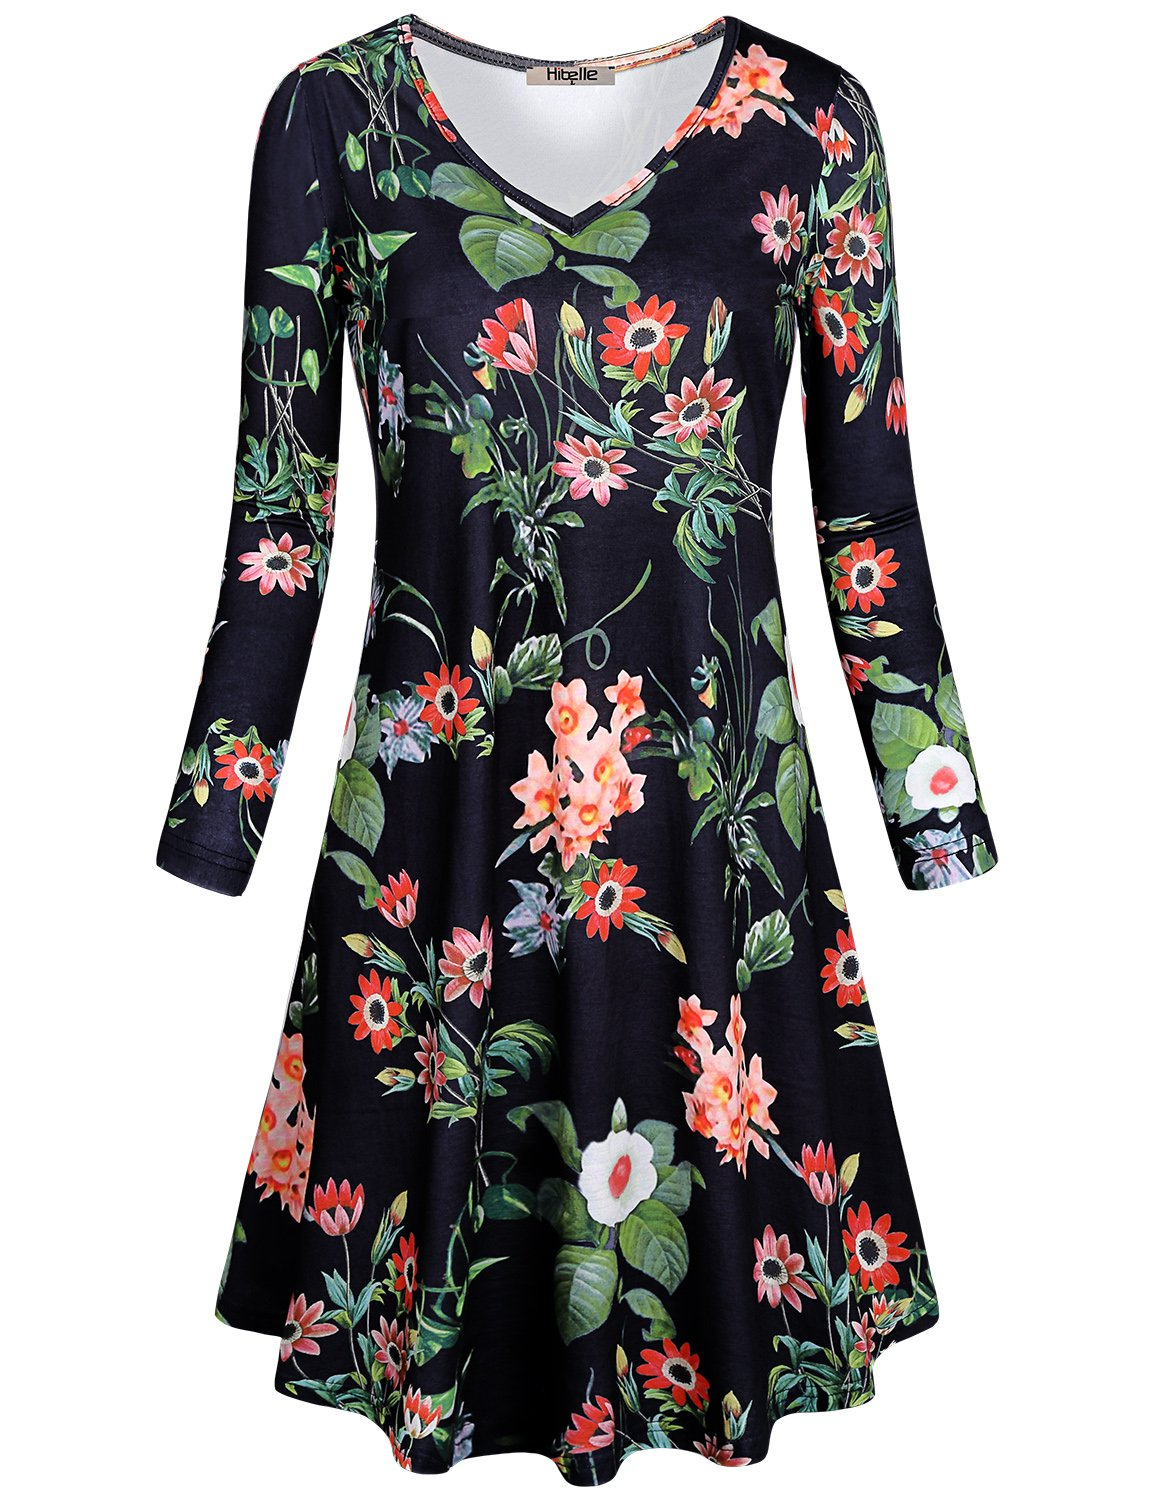 Hibelle Casual Dresses for Women, Juniors Floral Print Long Sleeve V-Neck A Line Jersey Knit Fabric Cozy Flattering Swing Fall Weekend Tunic Midi Dress with Pockets Black Medium